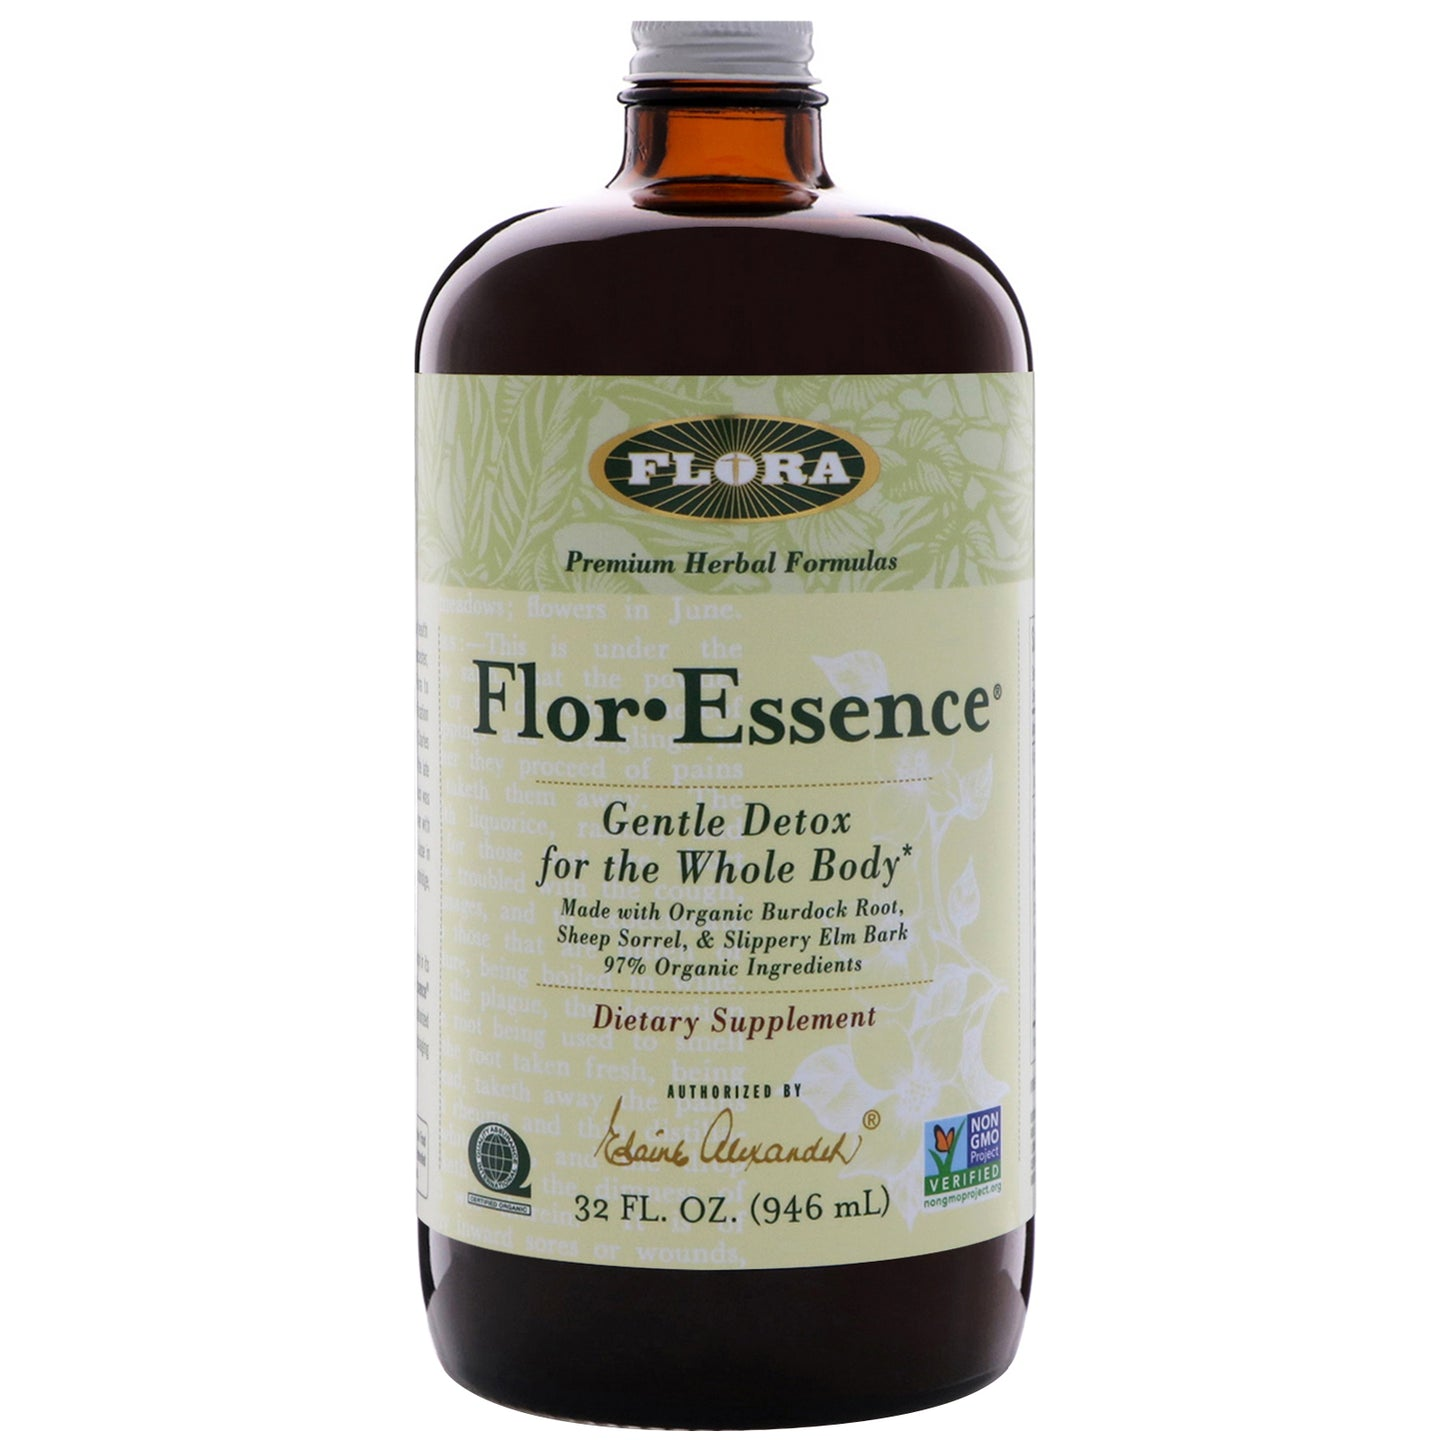 Flor Essence by Flora Liquid Tea Blend - 32 oz - 946 mL